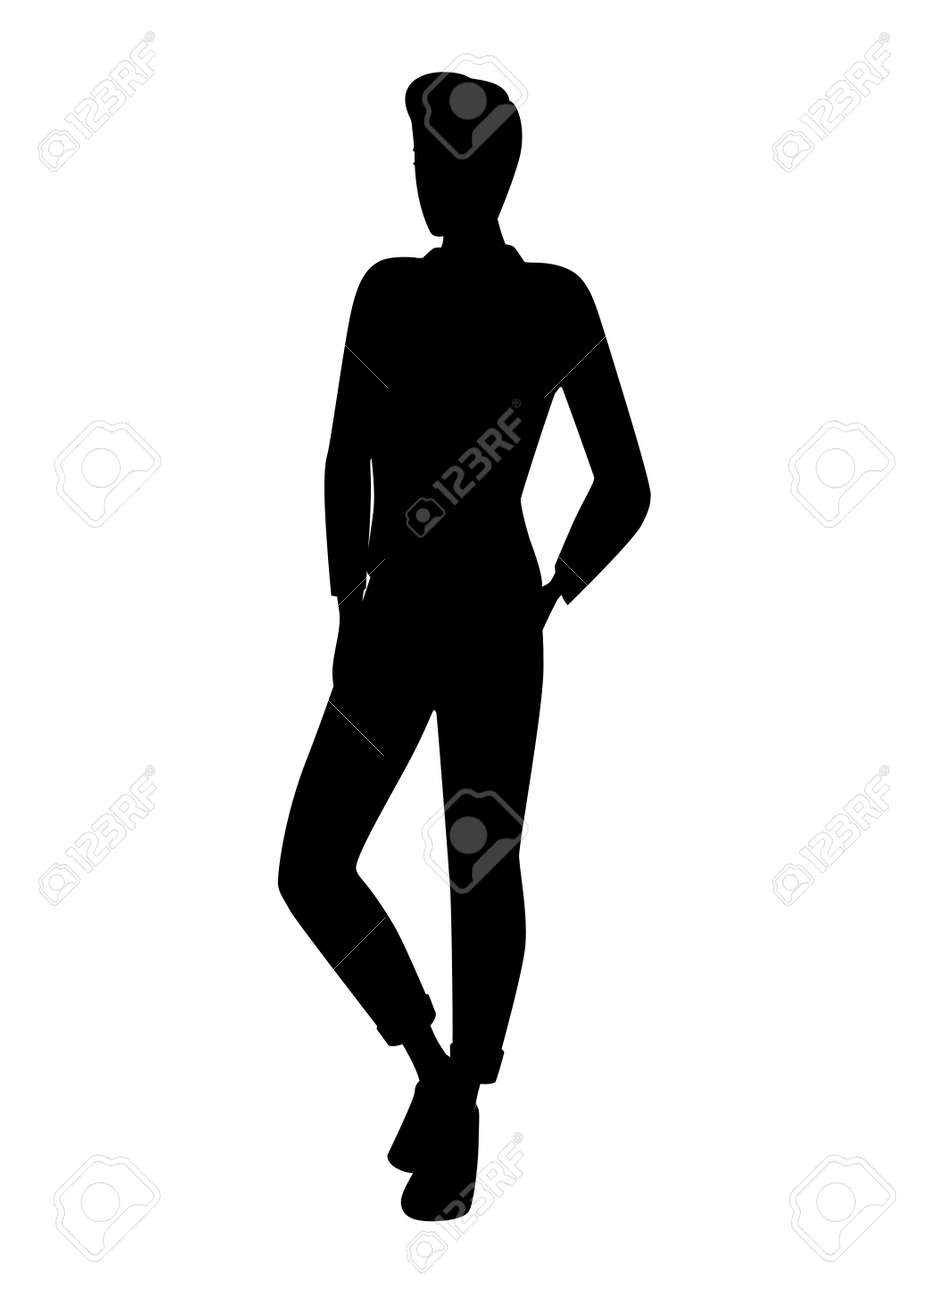 Black silhouette cute young man in fashion casual clothes cartoon character design flat vector illustration isolated on white background. - 146694011